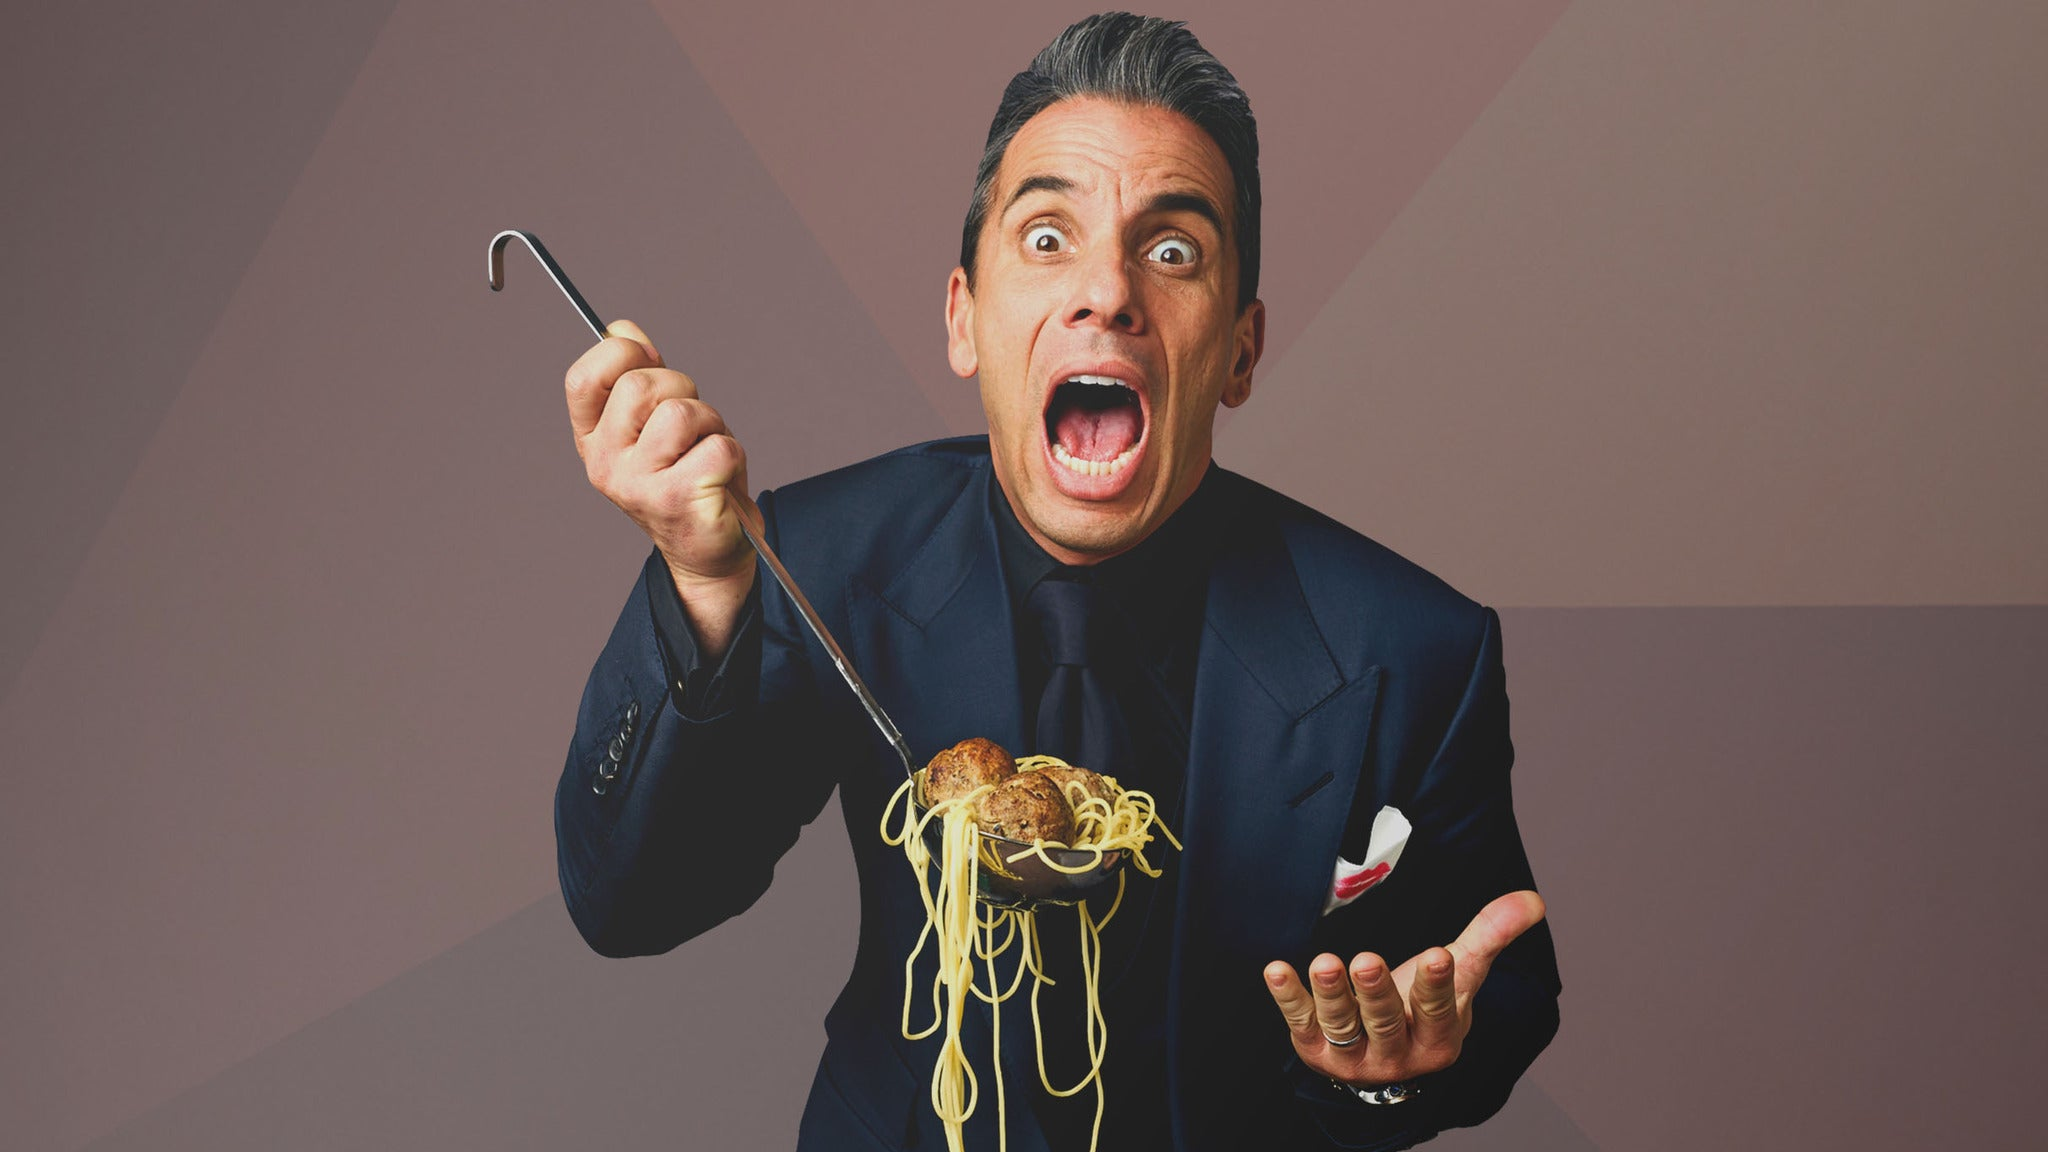 Sebastian Maniscalco: Stay Hungry Tour at The Masonic